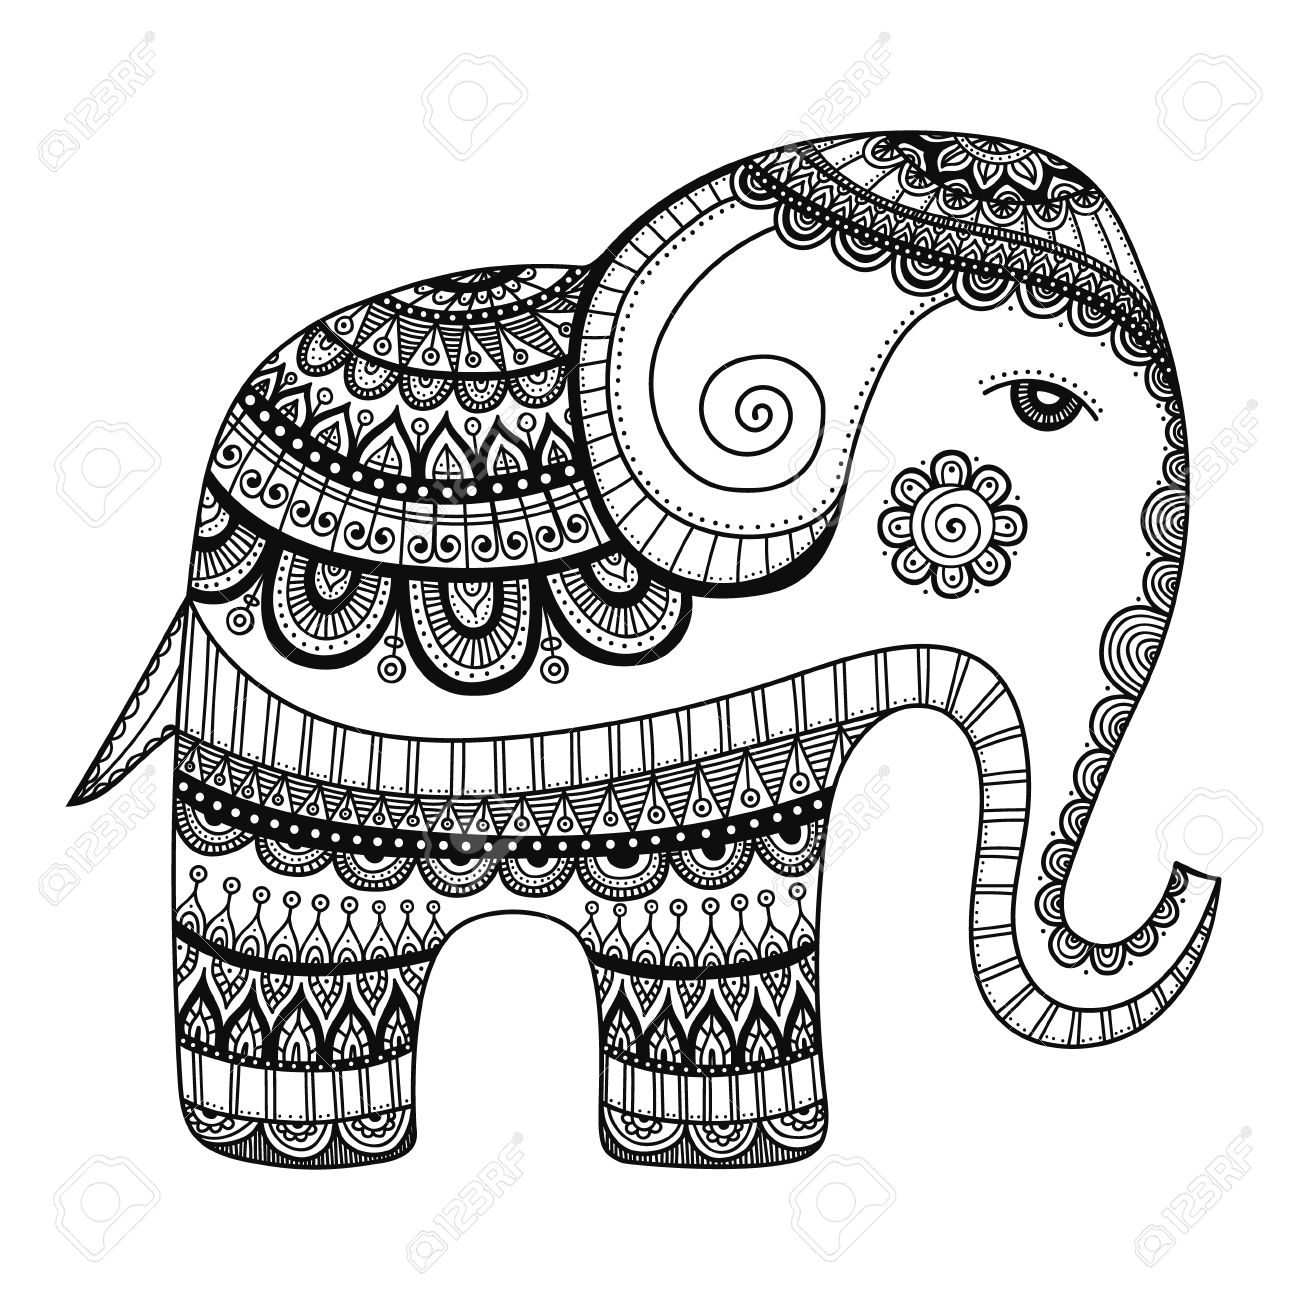 1300x1300 Indian Elephant. Hand Drawn Doodle Indian Elephant With Tribal